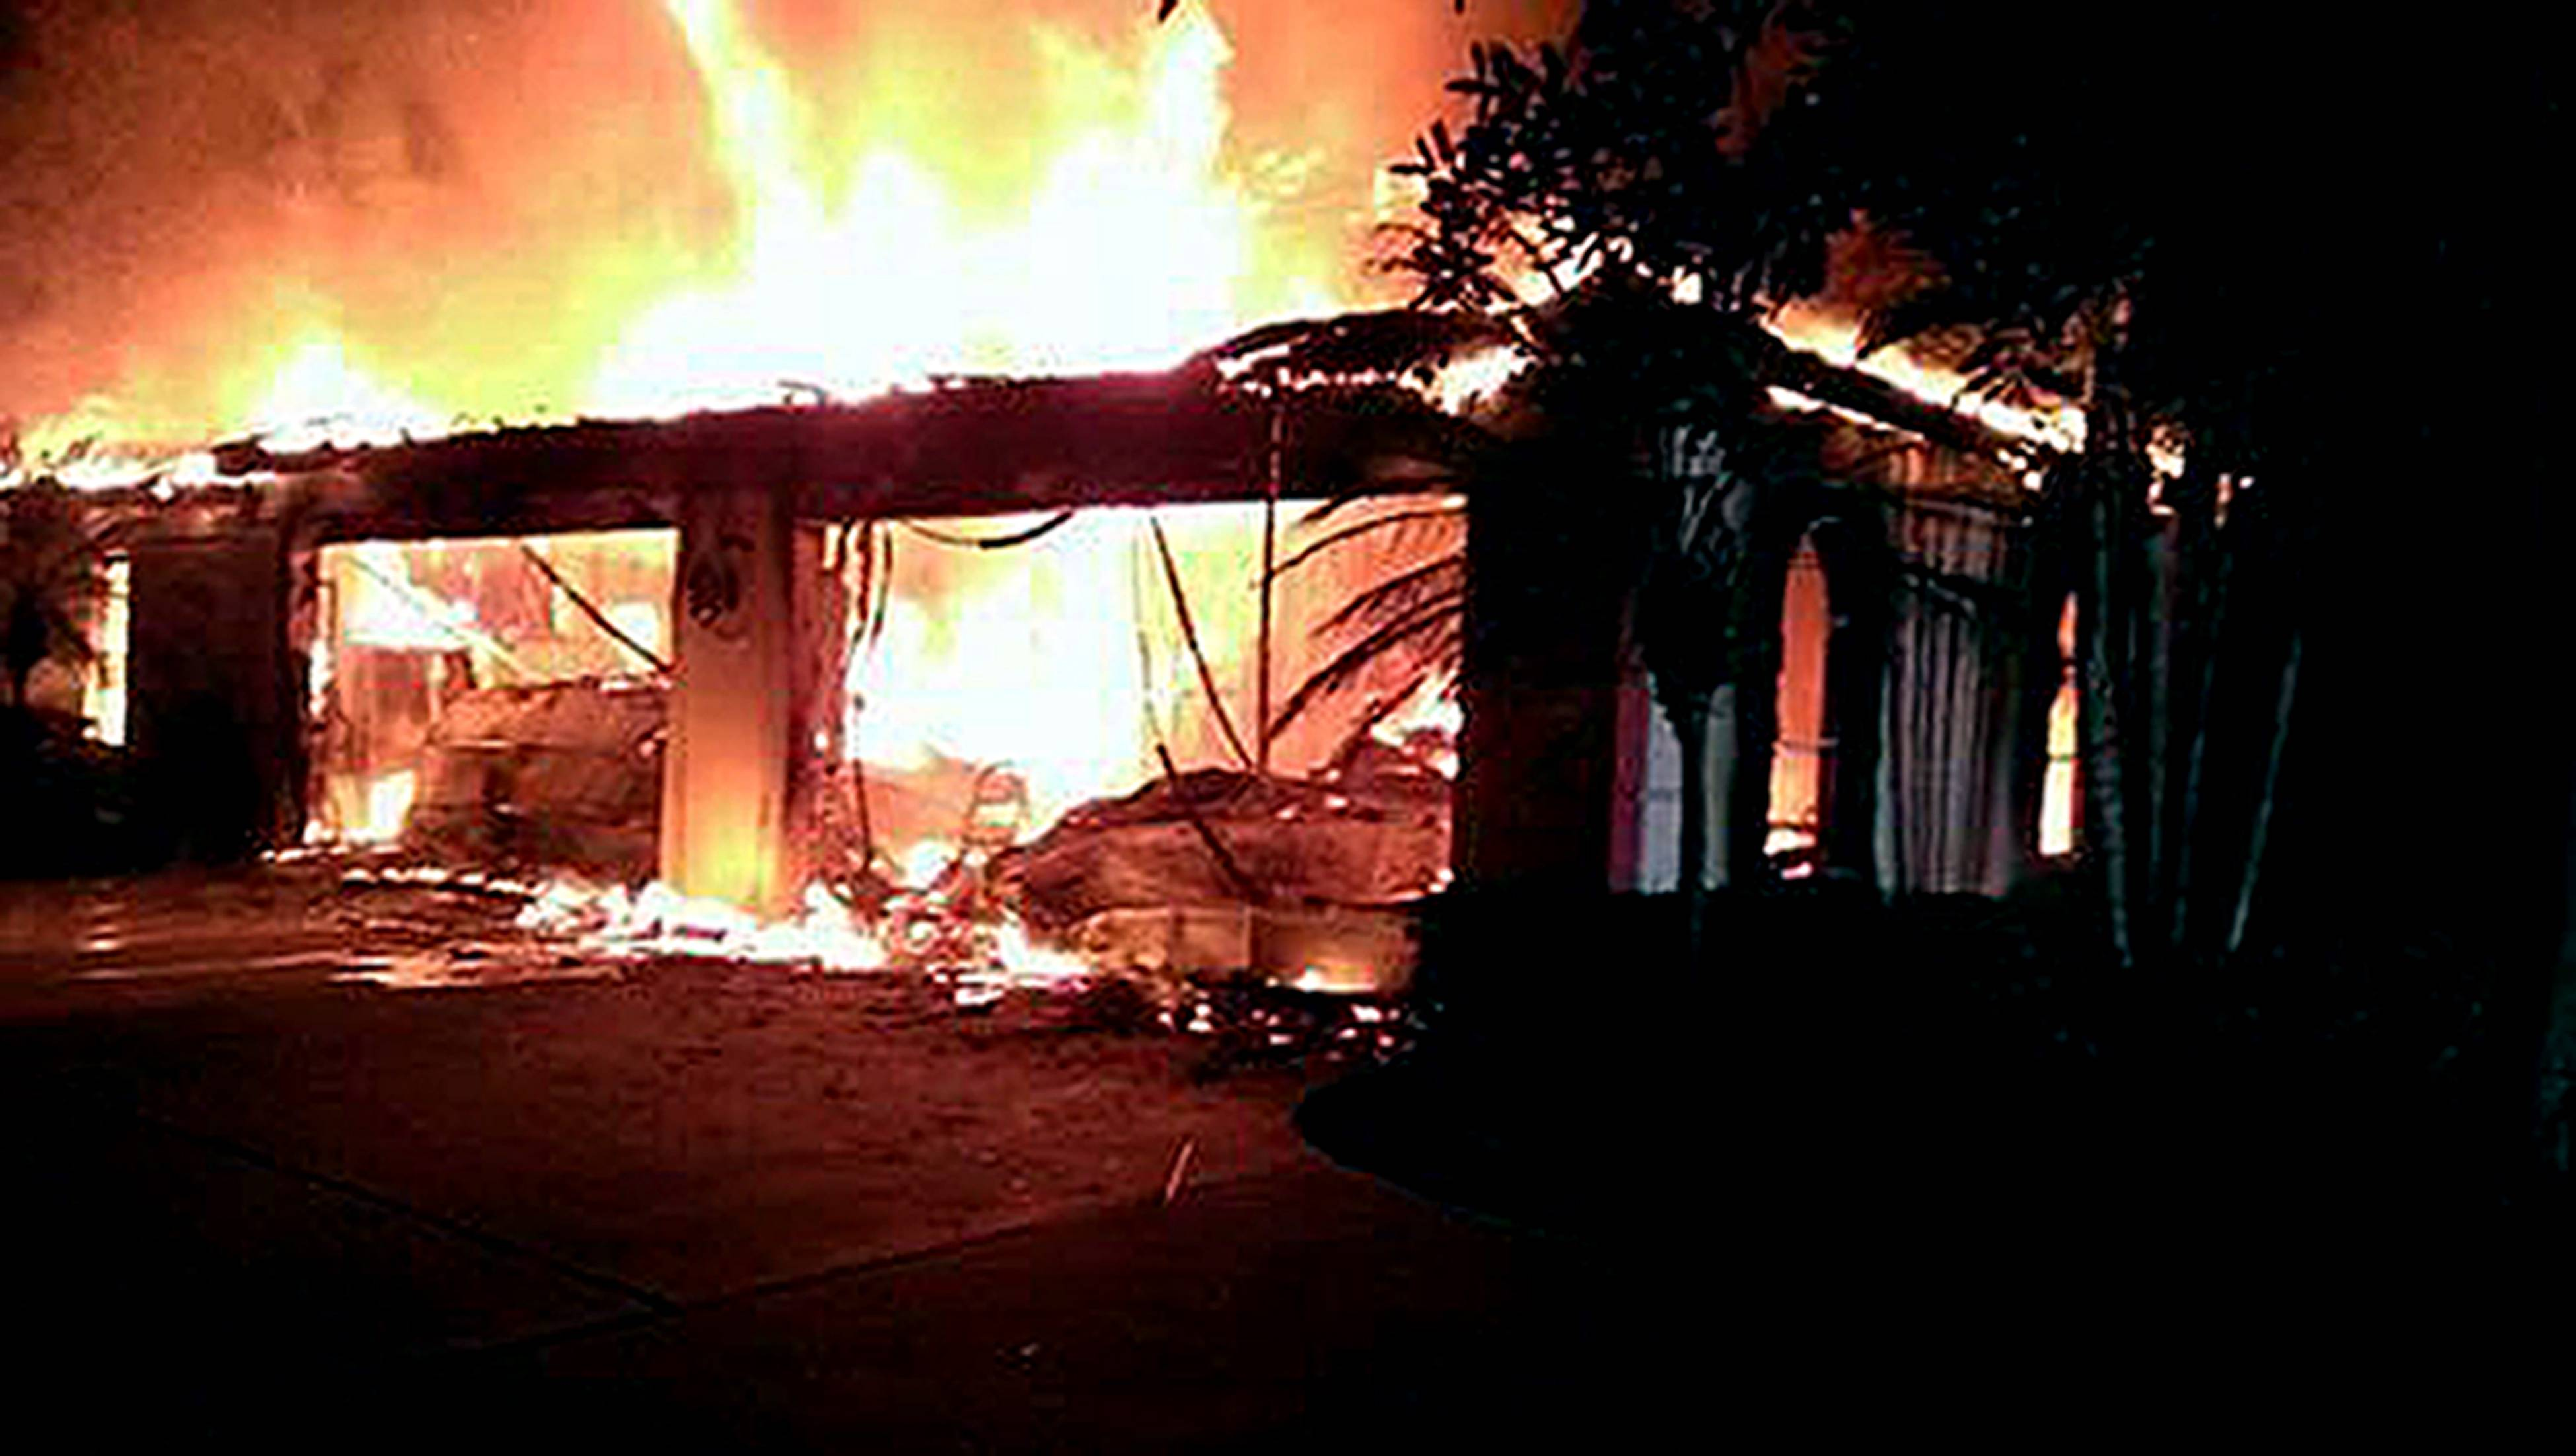 In this photo provided by the Hillsborough County Sheriff's Office, flames destroy a home in a gated community Wednesday May 7, 2014 in Tampa, Fla. Officials have confirmed that three bodies have been found in the home.